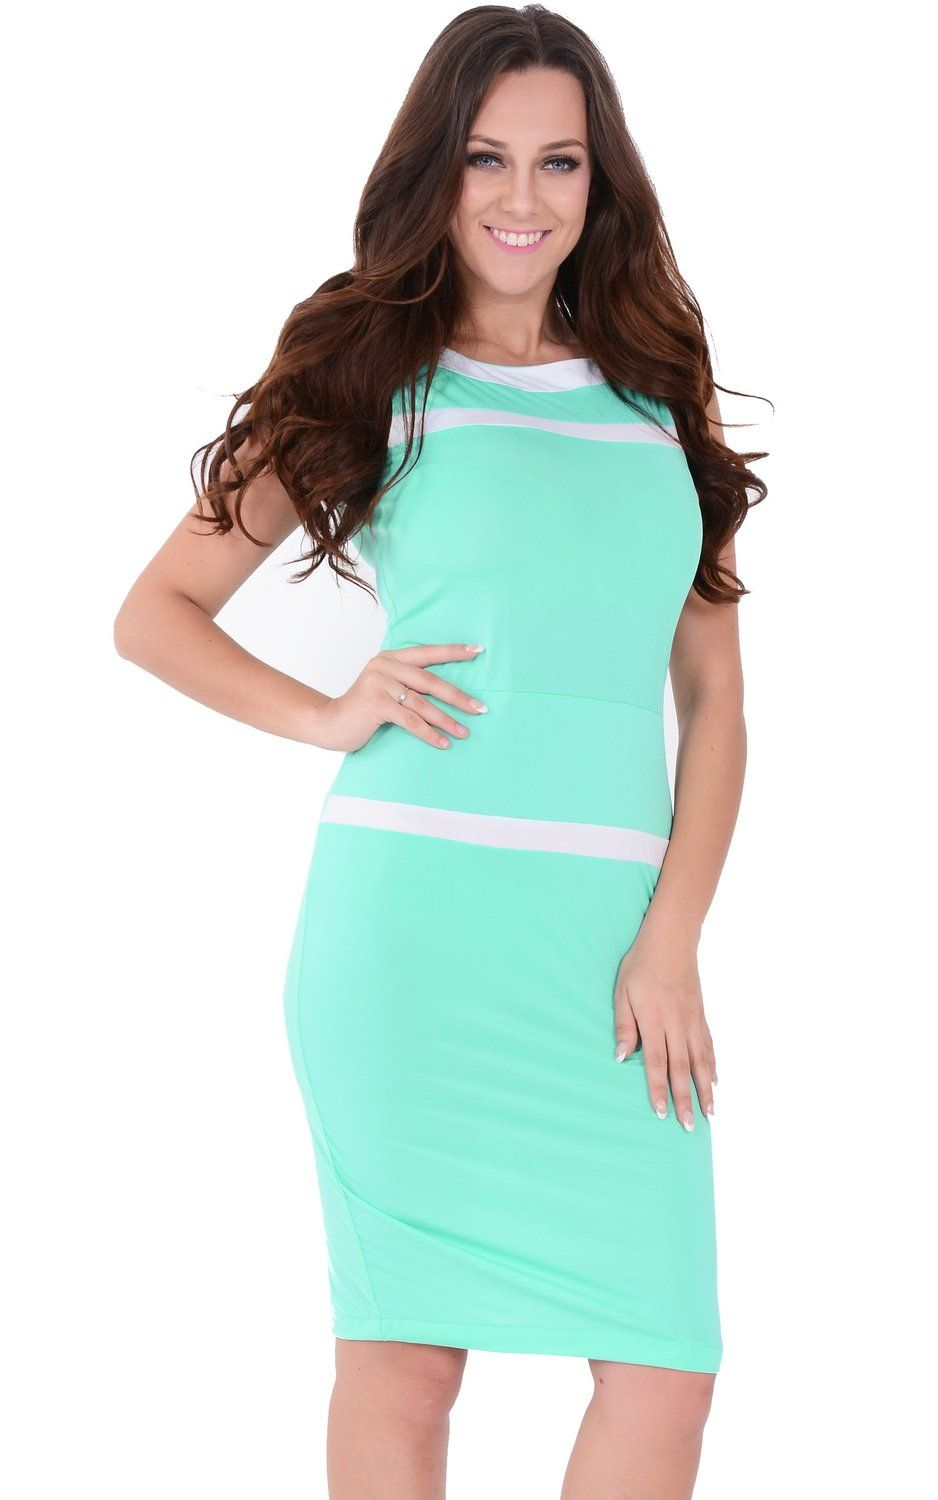 Stylish Green Vintage Bodycon Pencil Dress for Christmas Party ...